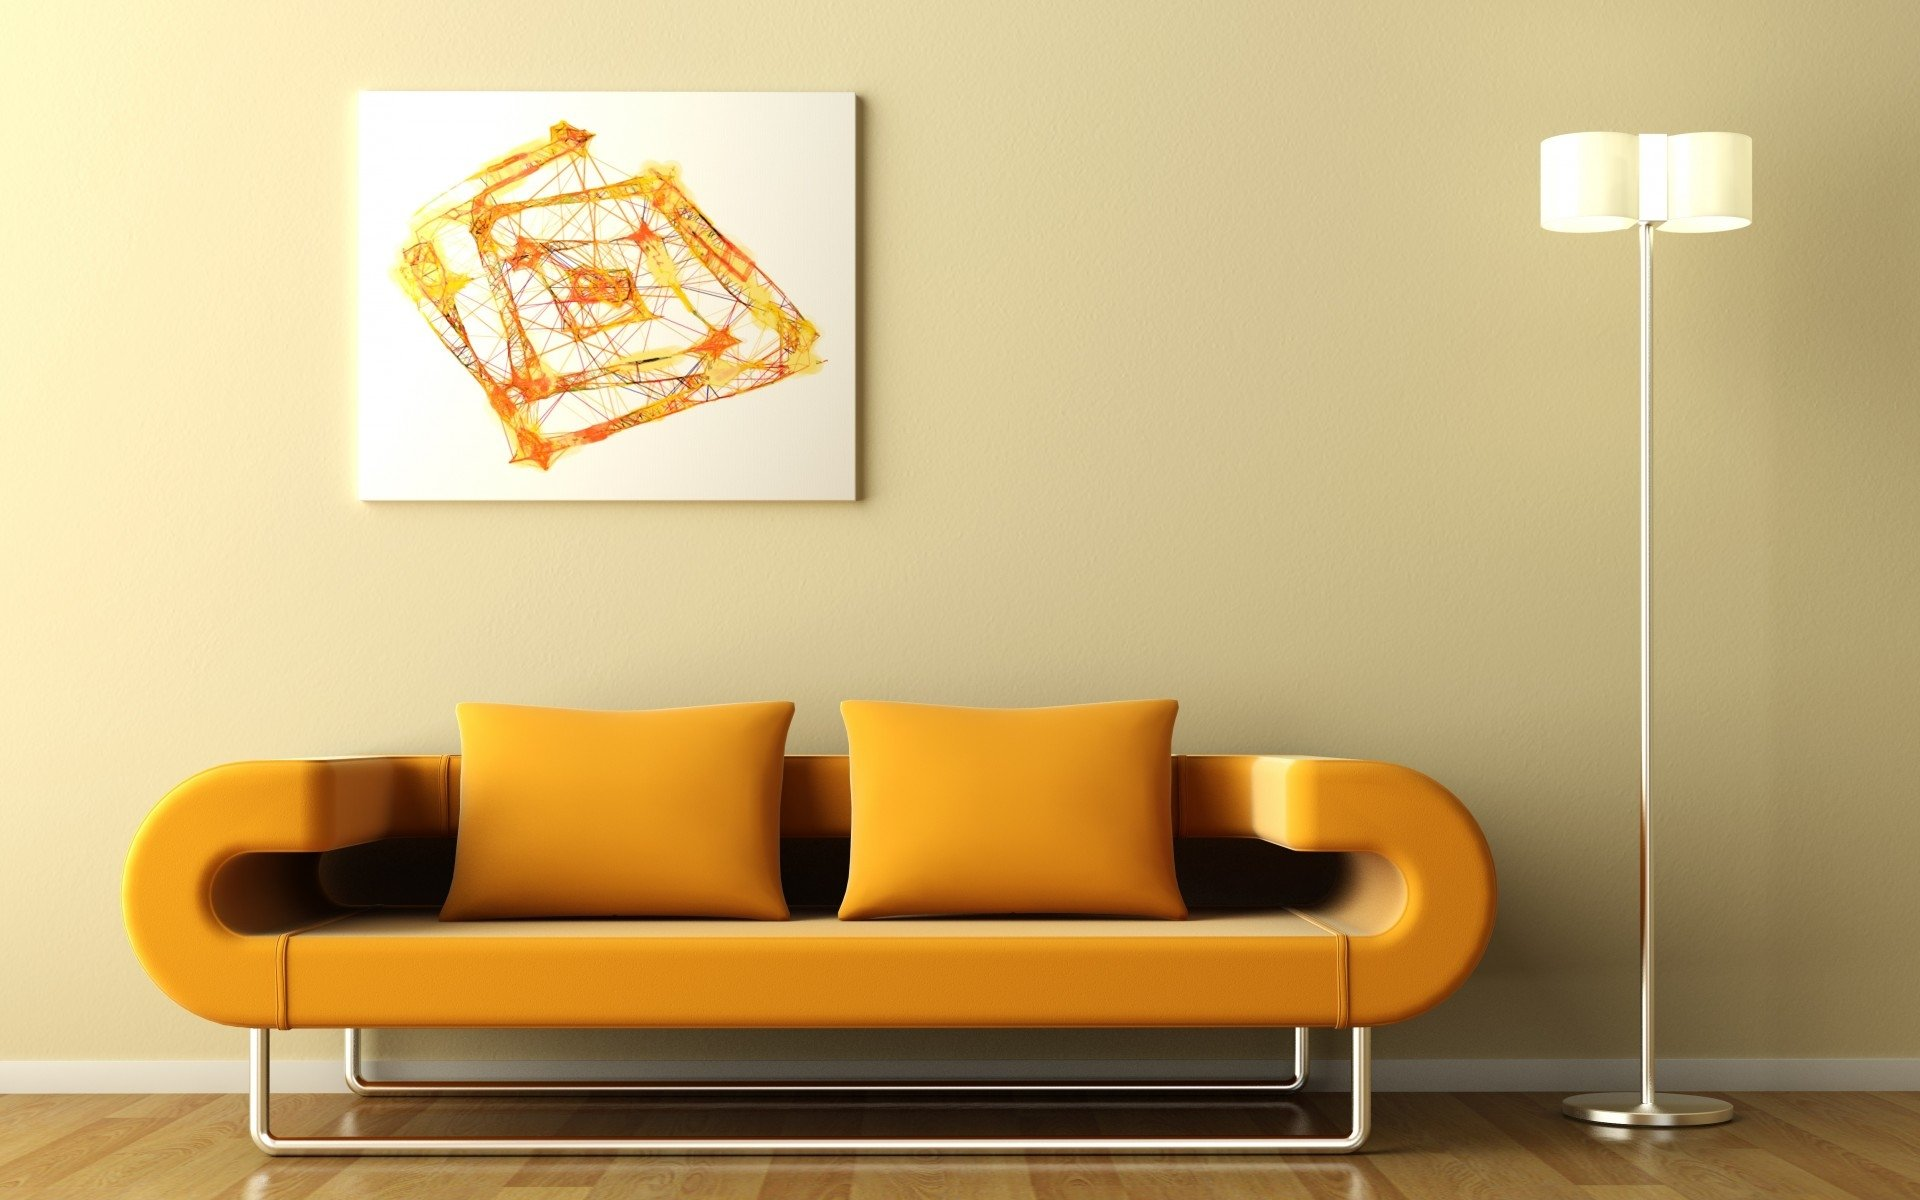 Sofa Hd Wallpaper Background Image X Id